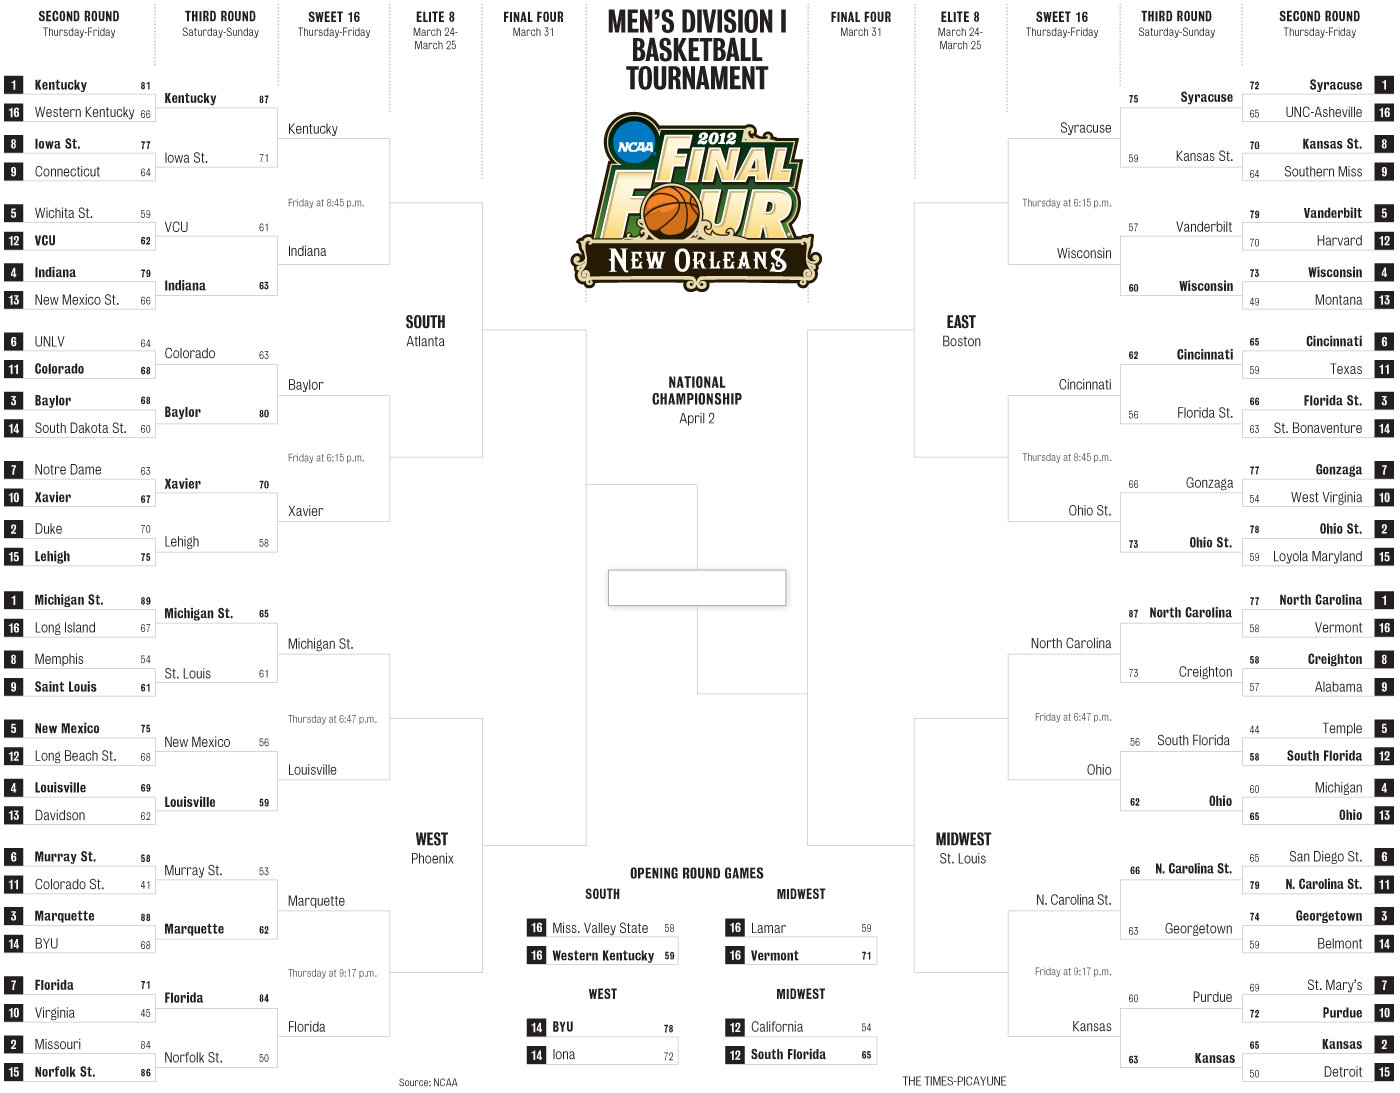 College basketball nba picks, nba scores and schedule 2015